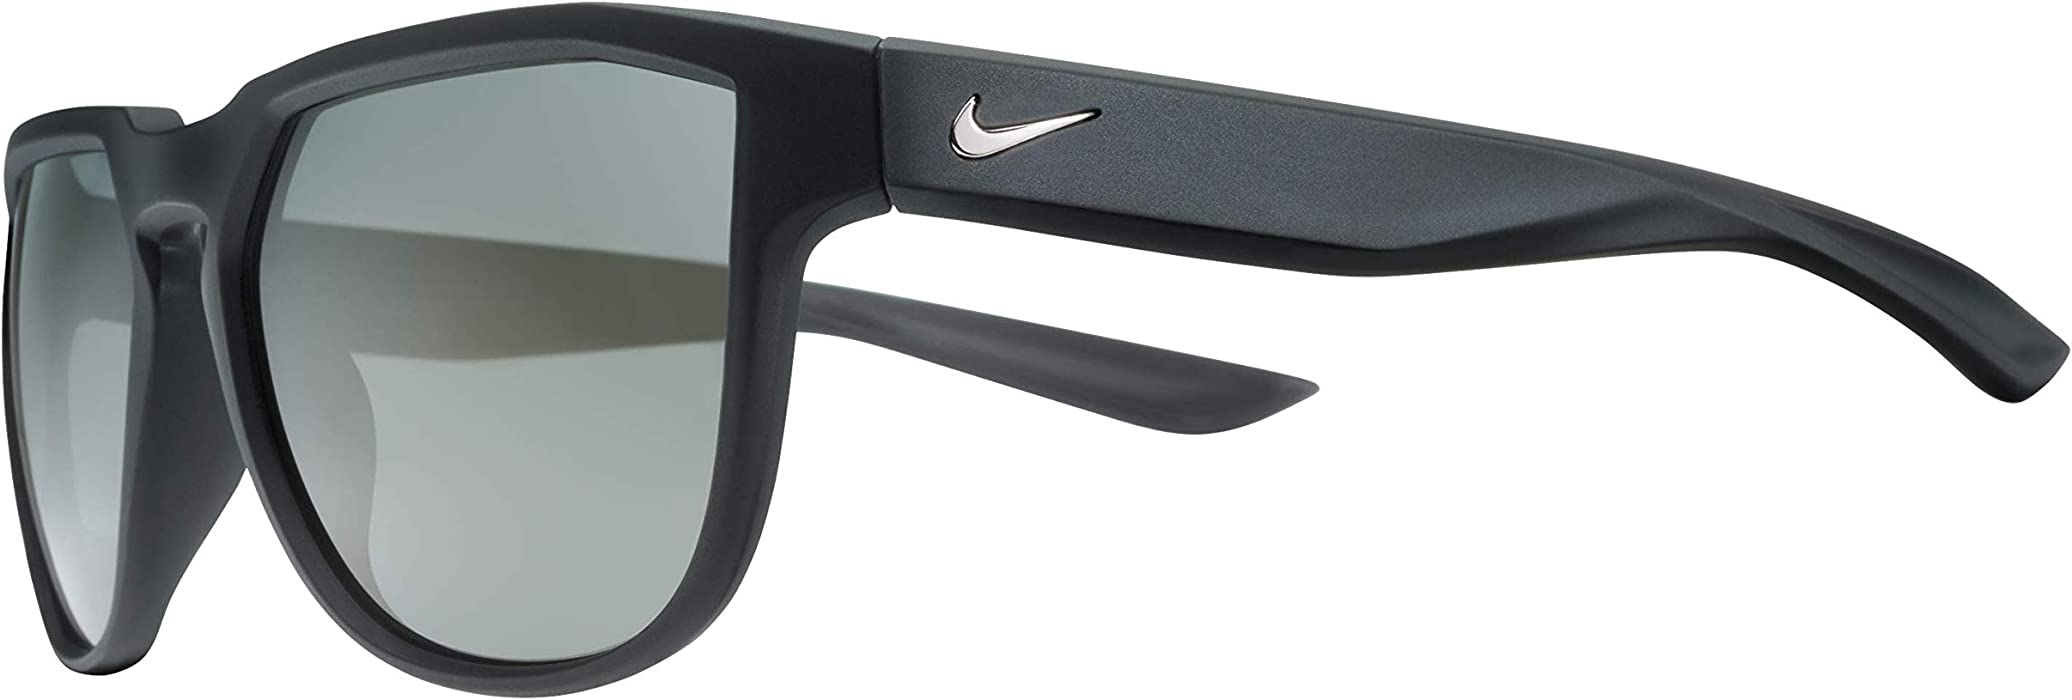 0f947b3ab2021 Amazon.com: Nike Golf Men's Nike Fly Swift Rectangular Sunglasses ...